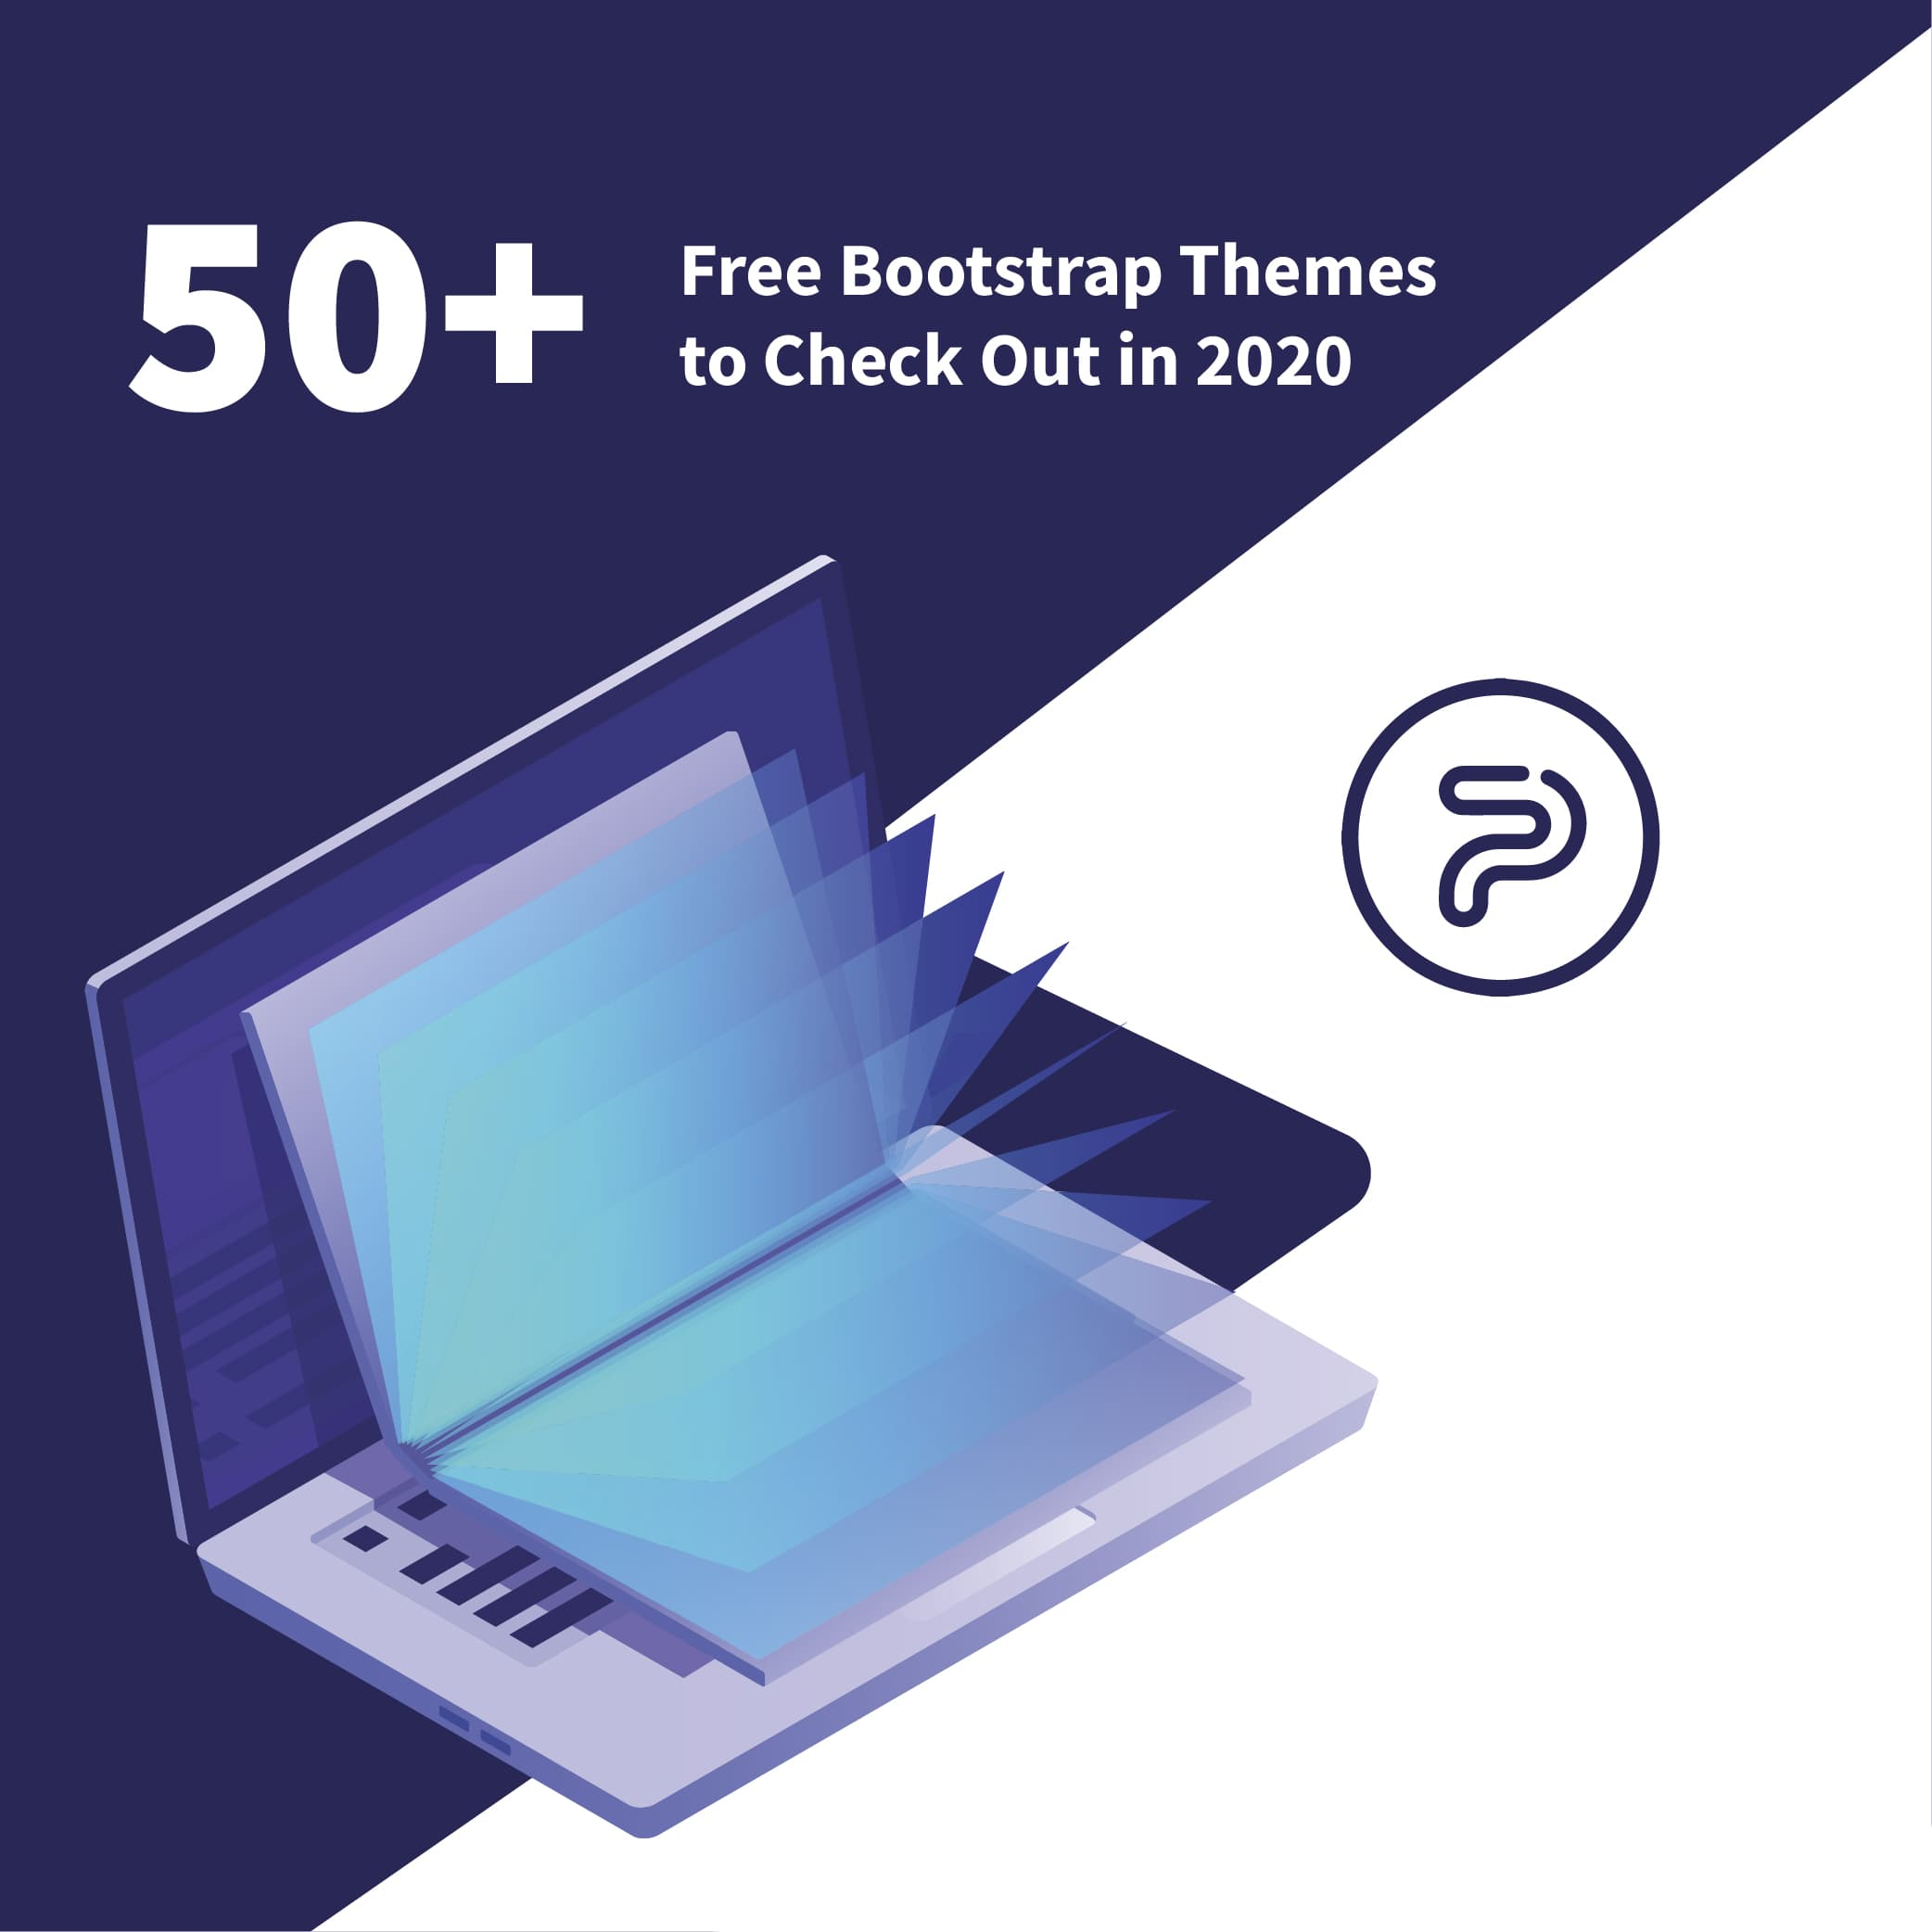 50+ Free Bootstrap Themes to Check Out in 2020